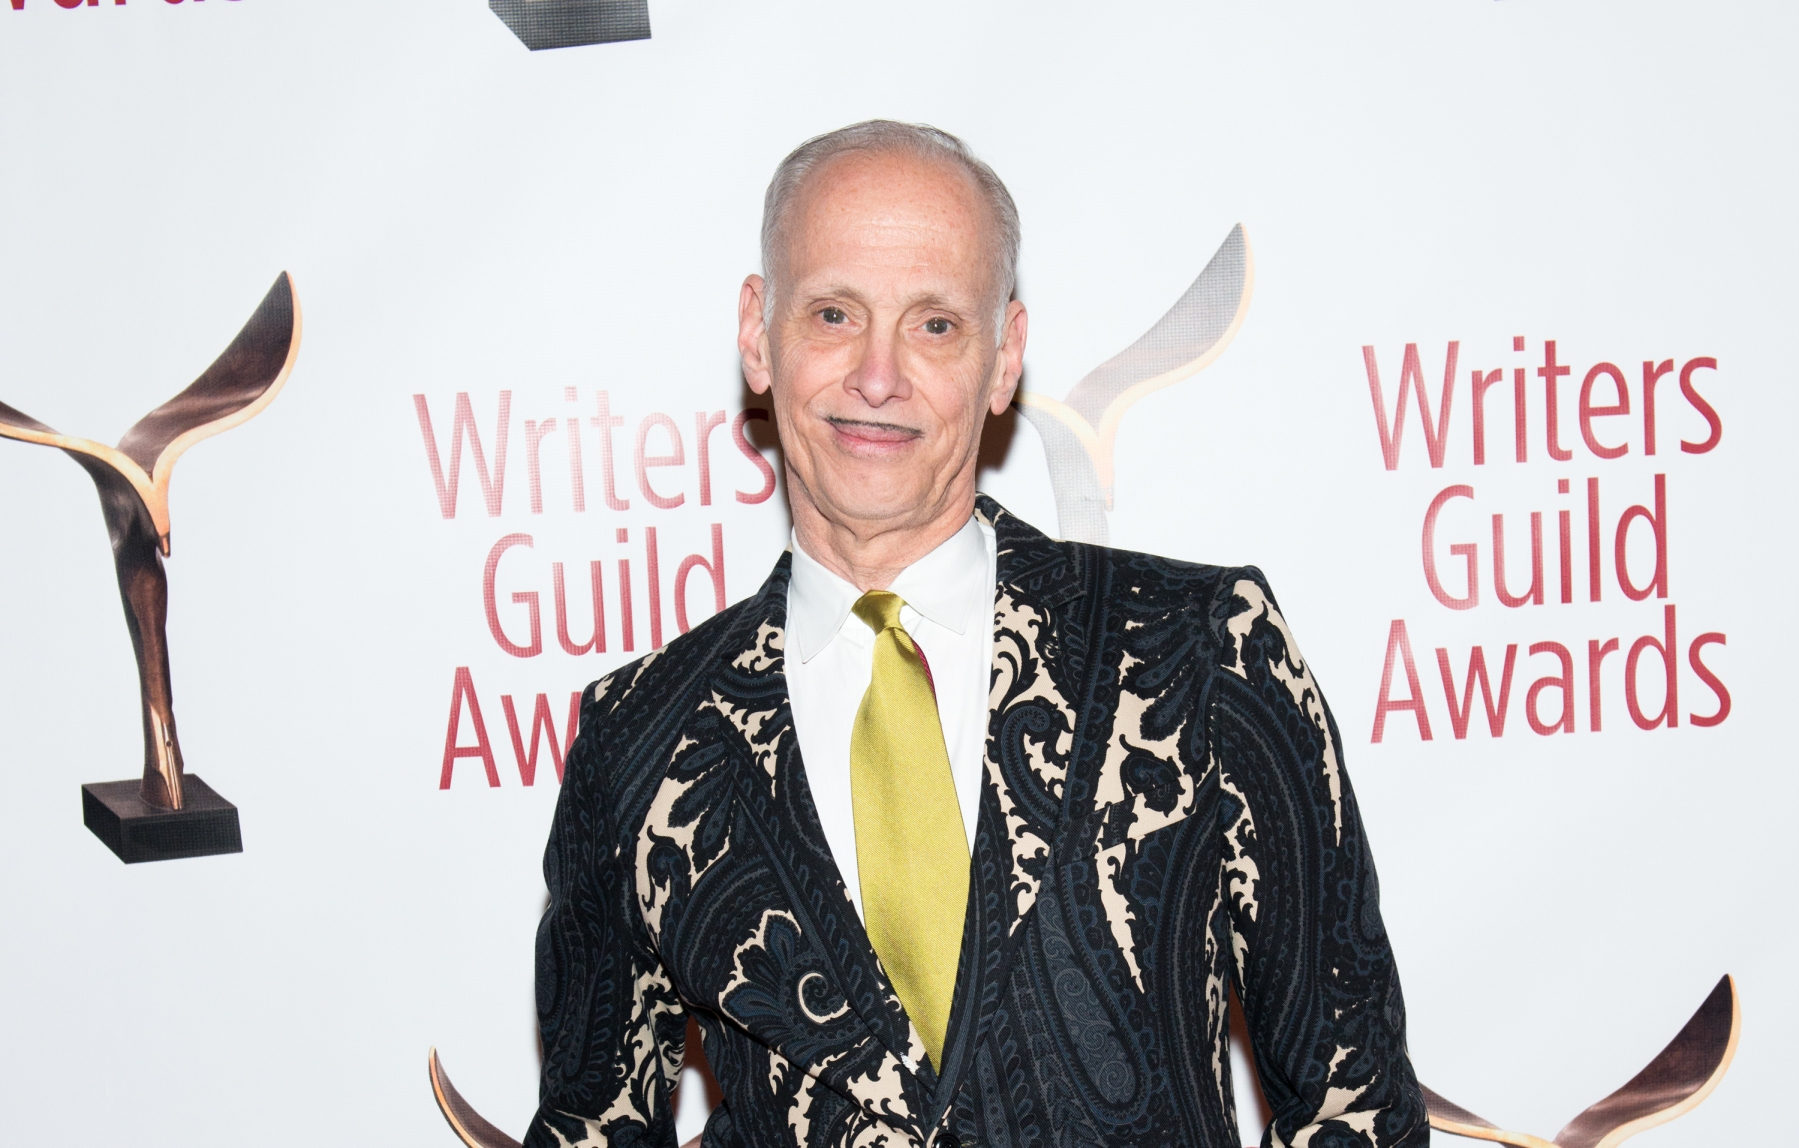 John Waters attends the 69th Annual Writers Guild Awards New York ceremony at Edison Ballroom on February 19, 2017 in New York City.  (Noam Galai/WireImage)